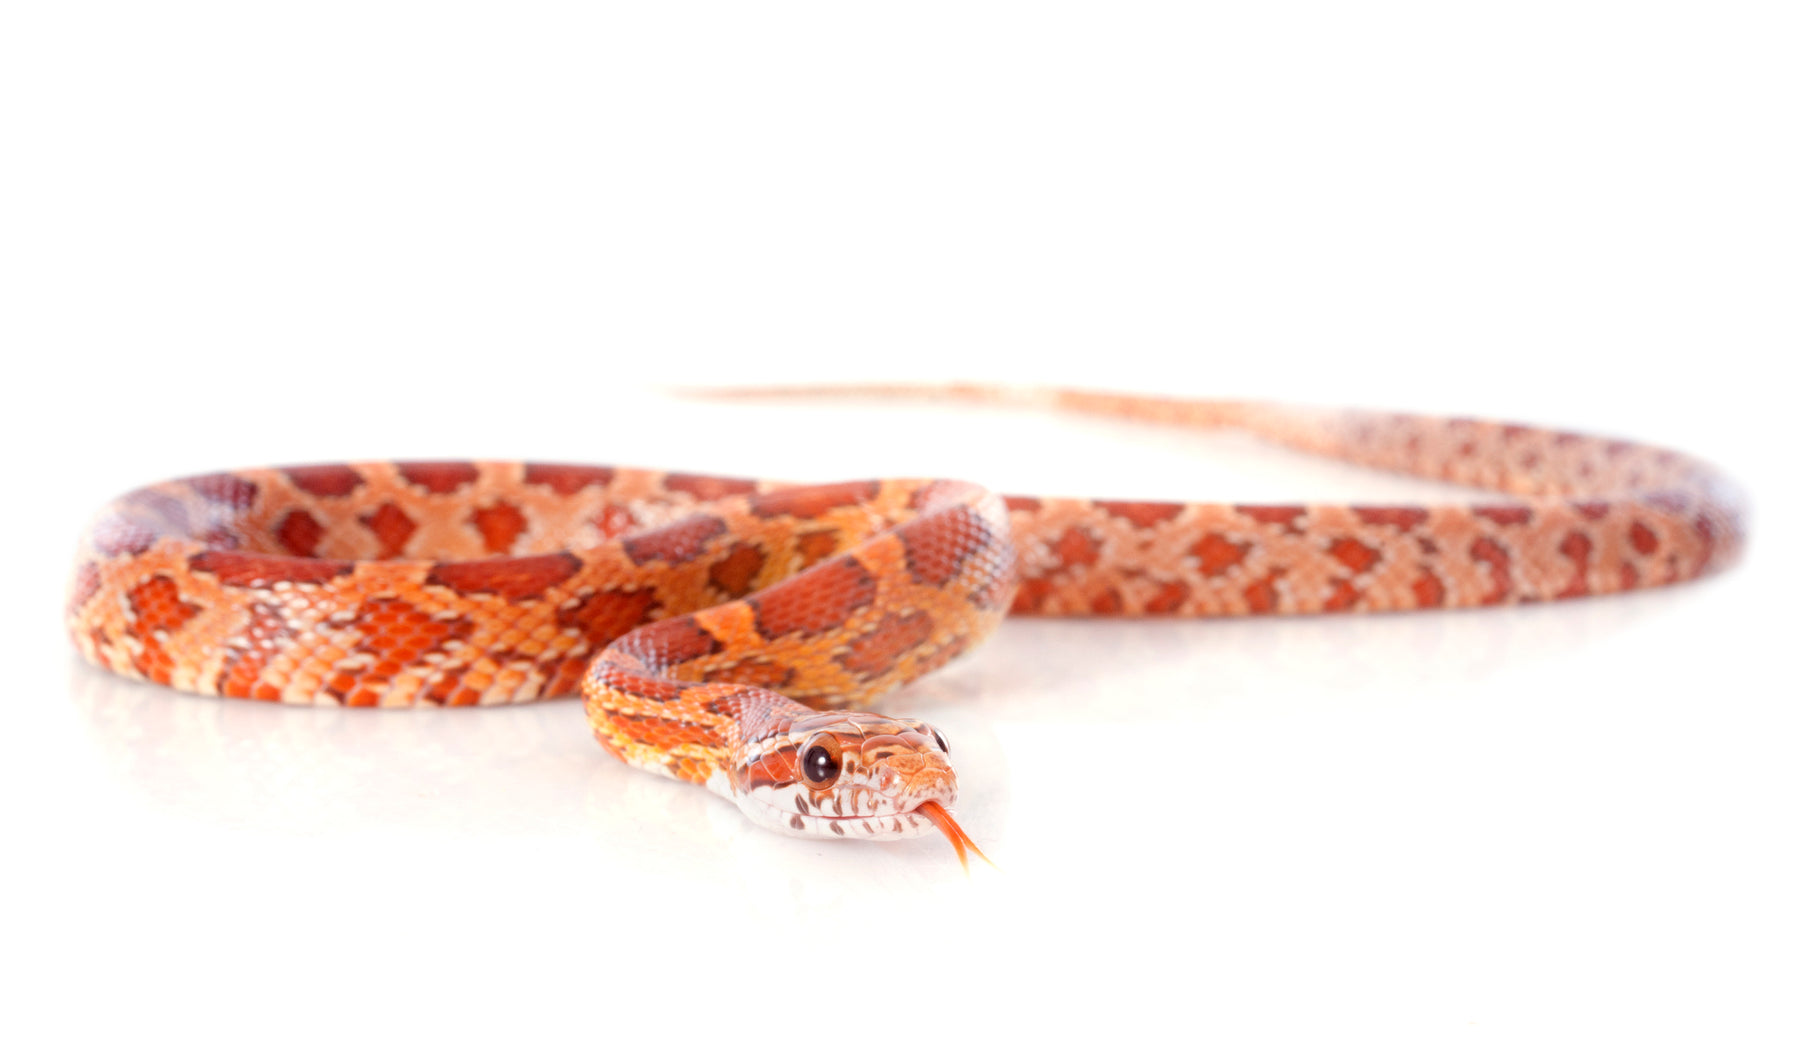 How to Care for Your Corn Snake